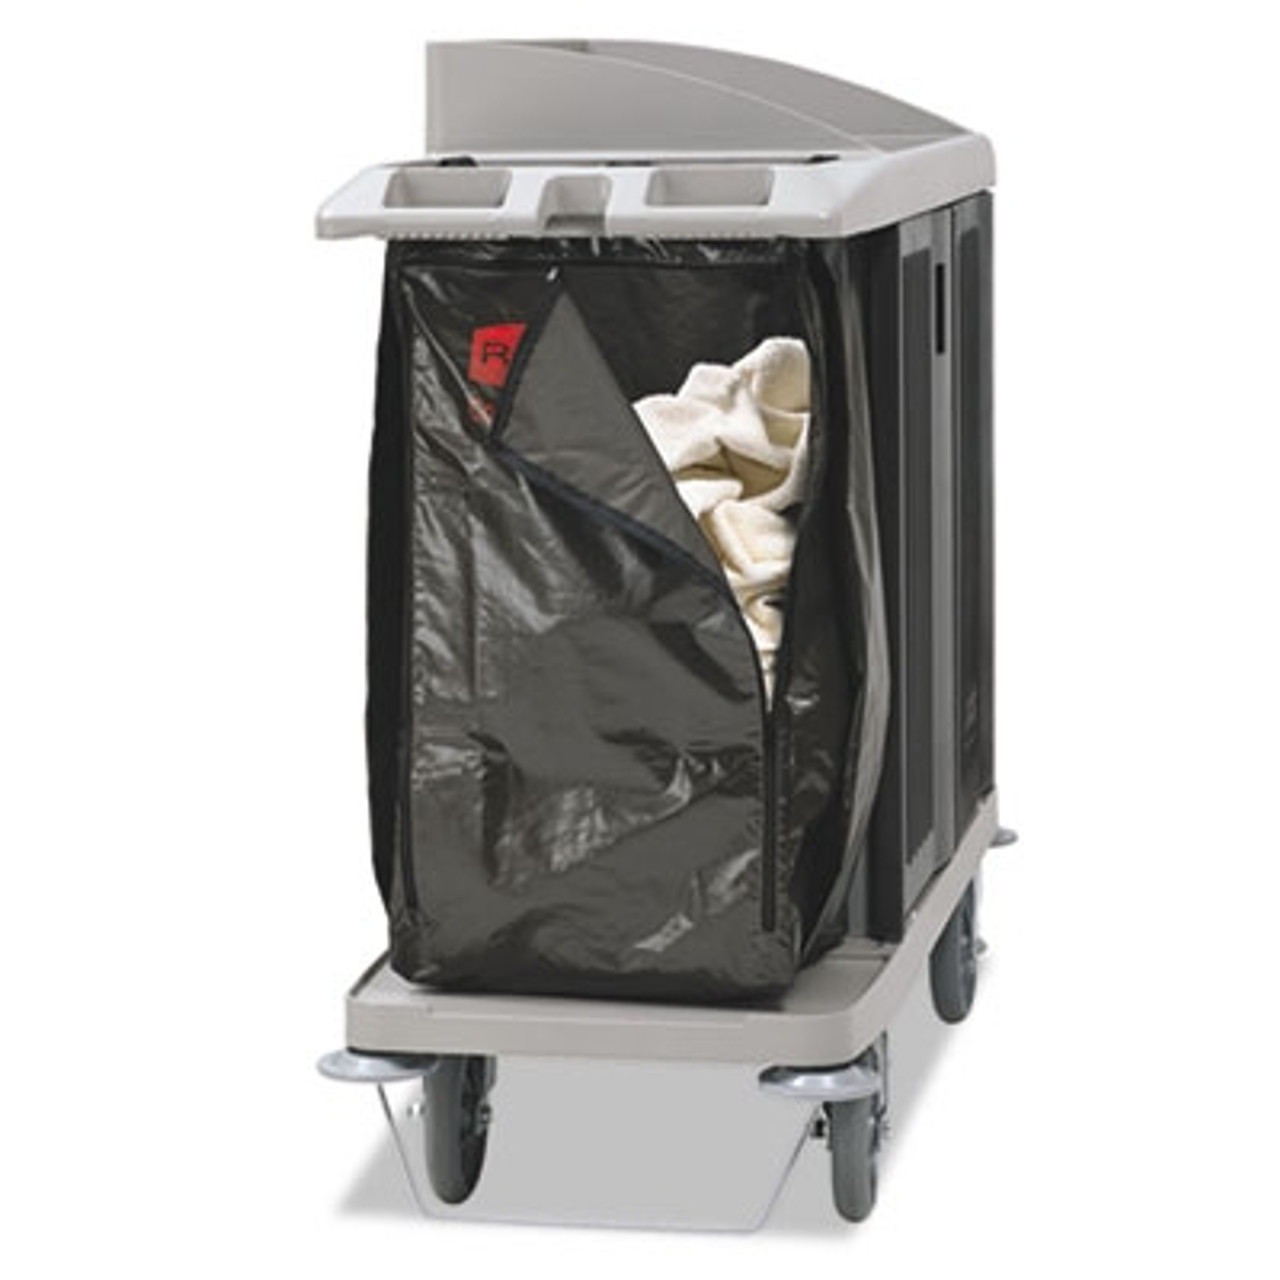 Rubbermaid Commercial Zippered Vinyl Cleaning Cart Bag, 25 gal, 17w x 10 1/2d x 33h, Brown